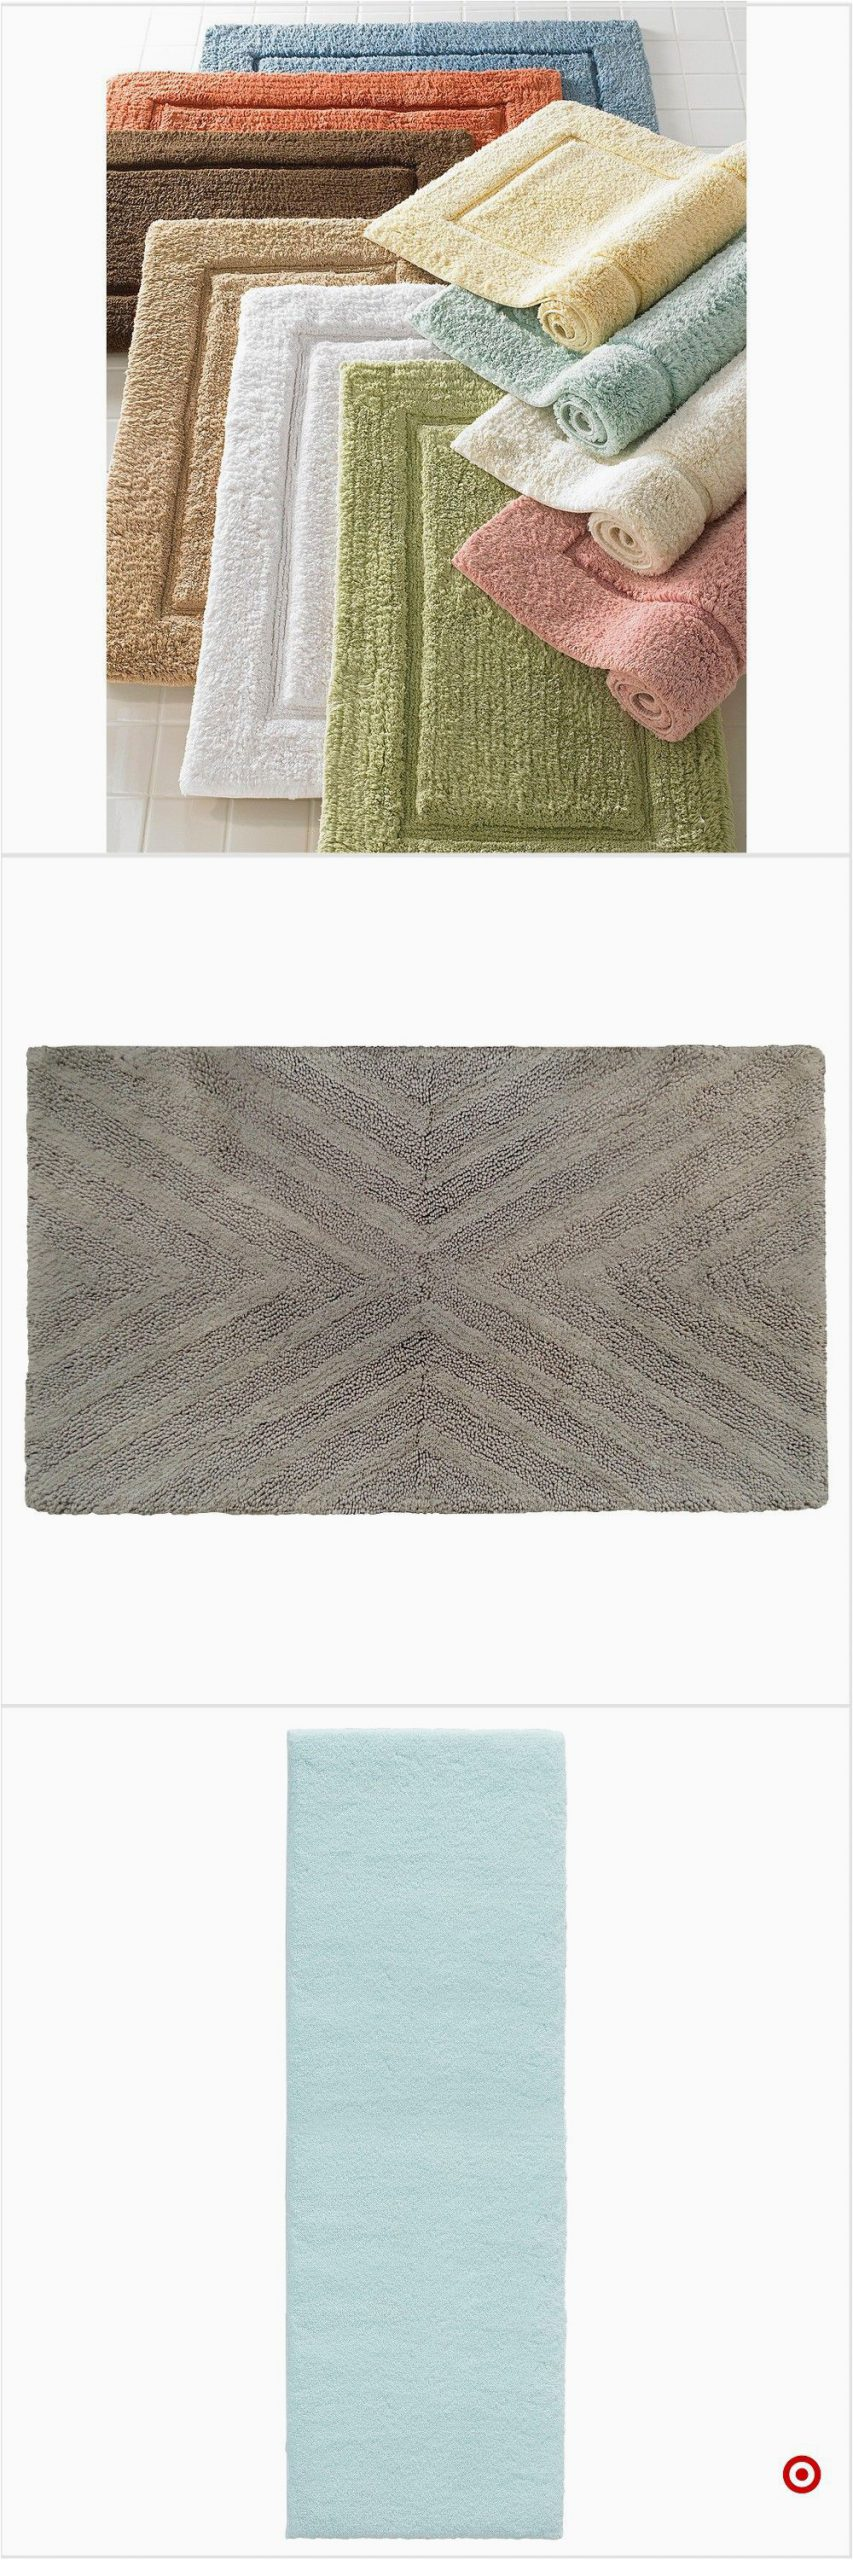 Target Bath Mats and Rugs Shop Tar for Bath Rug You Will Love at Great Low Prices